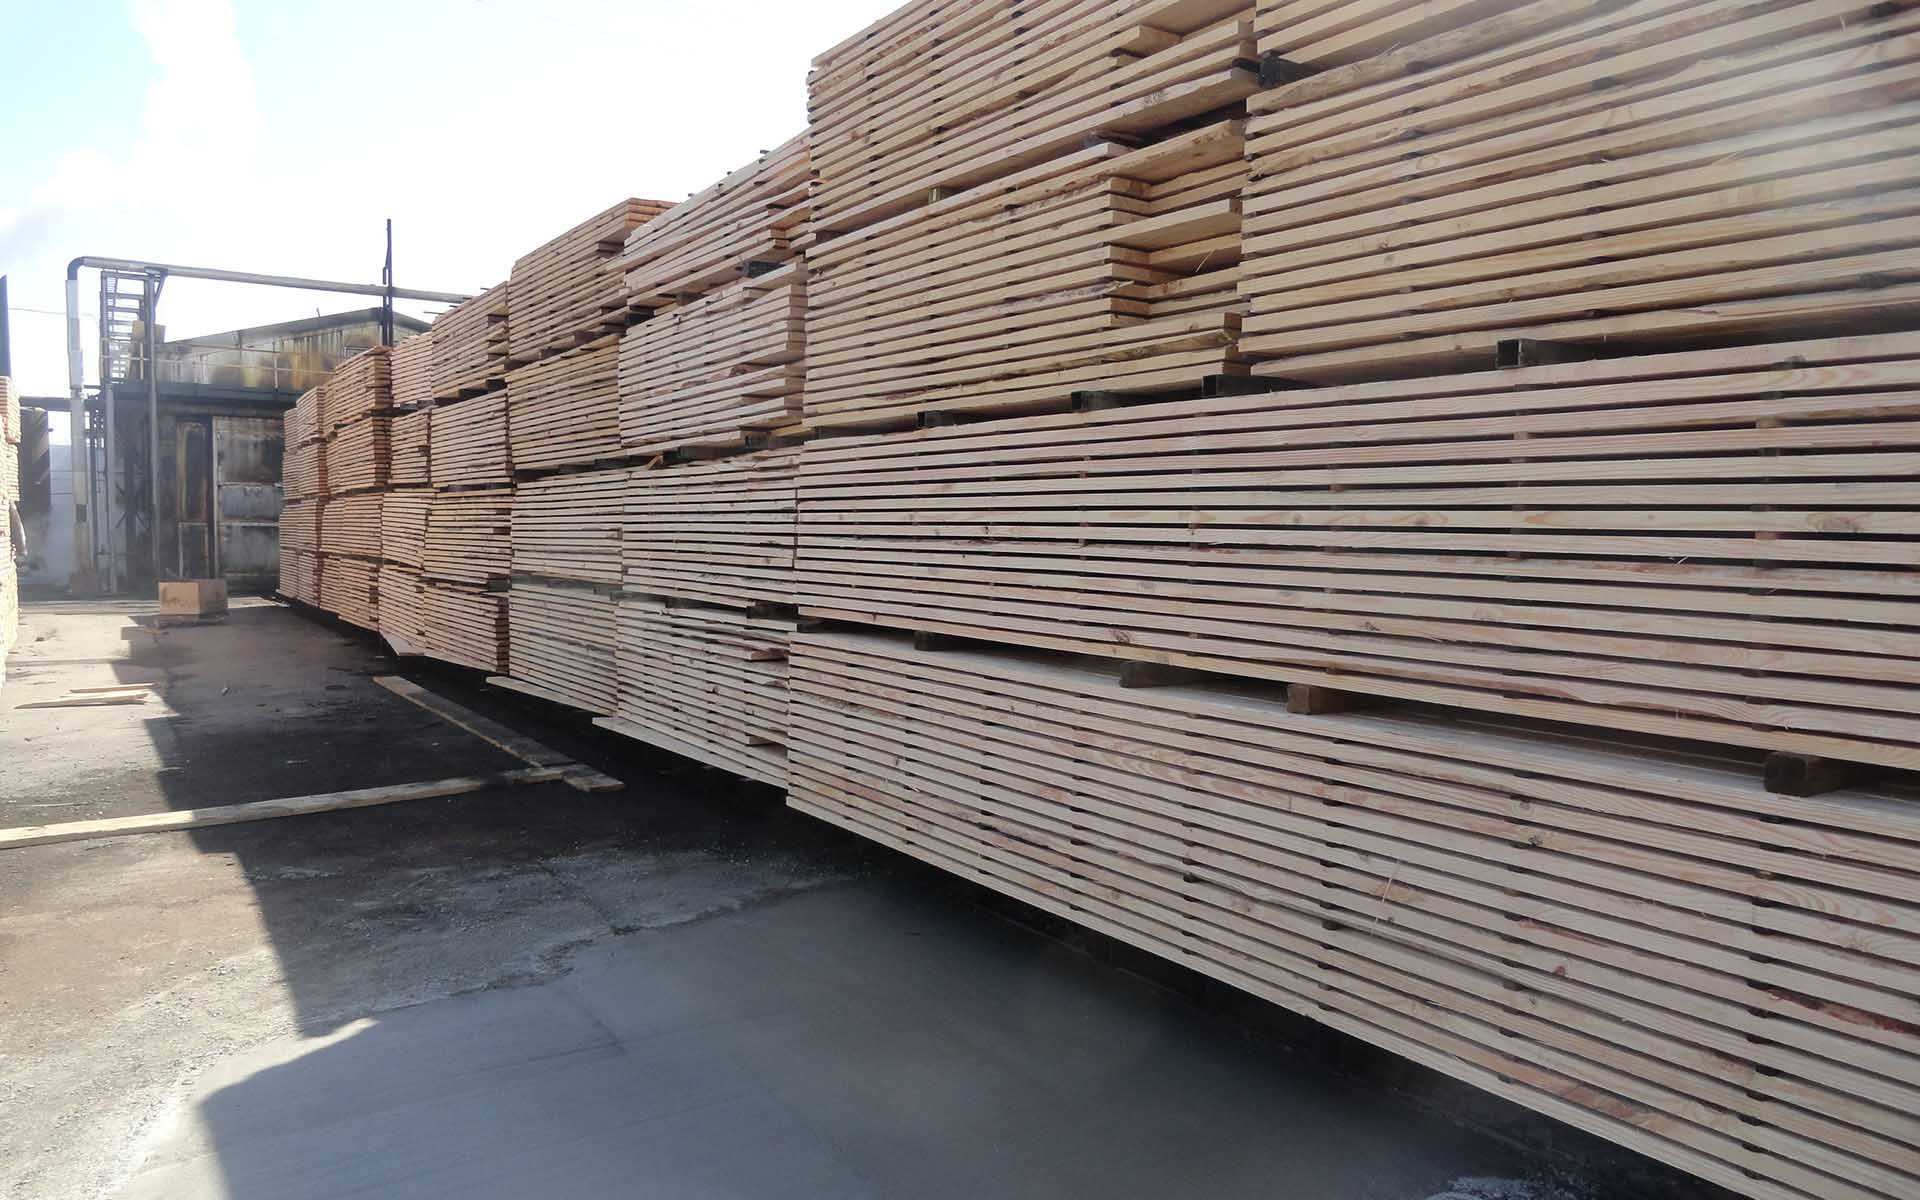 Naturally_Durable_Hardwood_Kiln_Sticks_yarding lumber 005.JPG